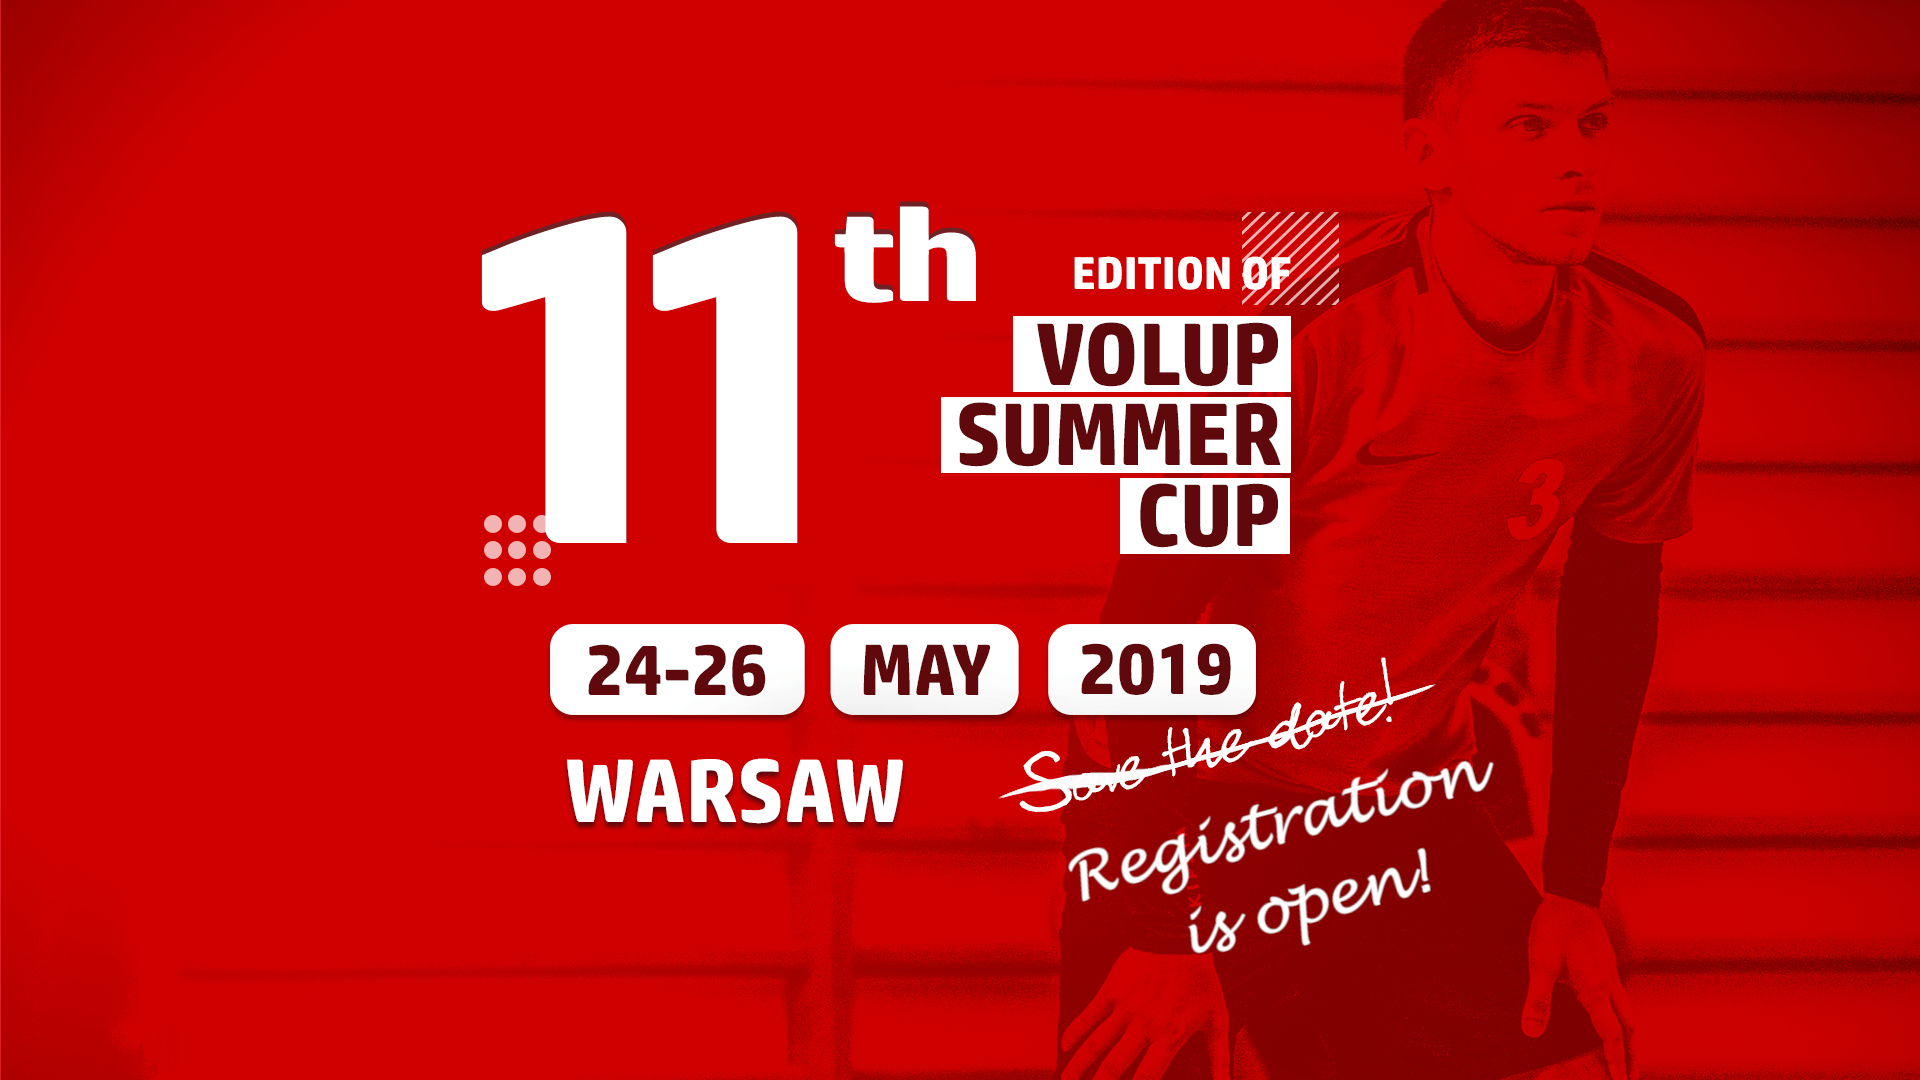 Volup Summer Cup 2019